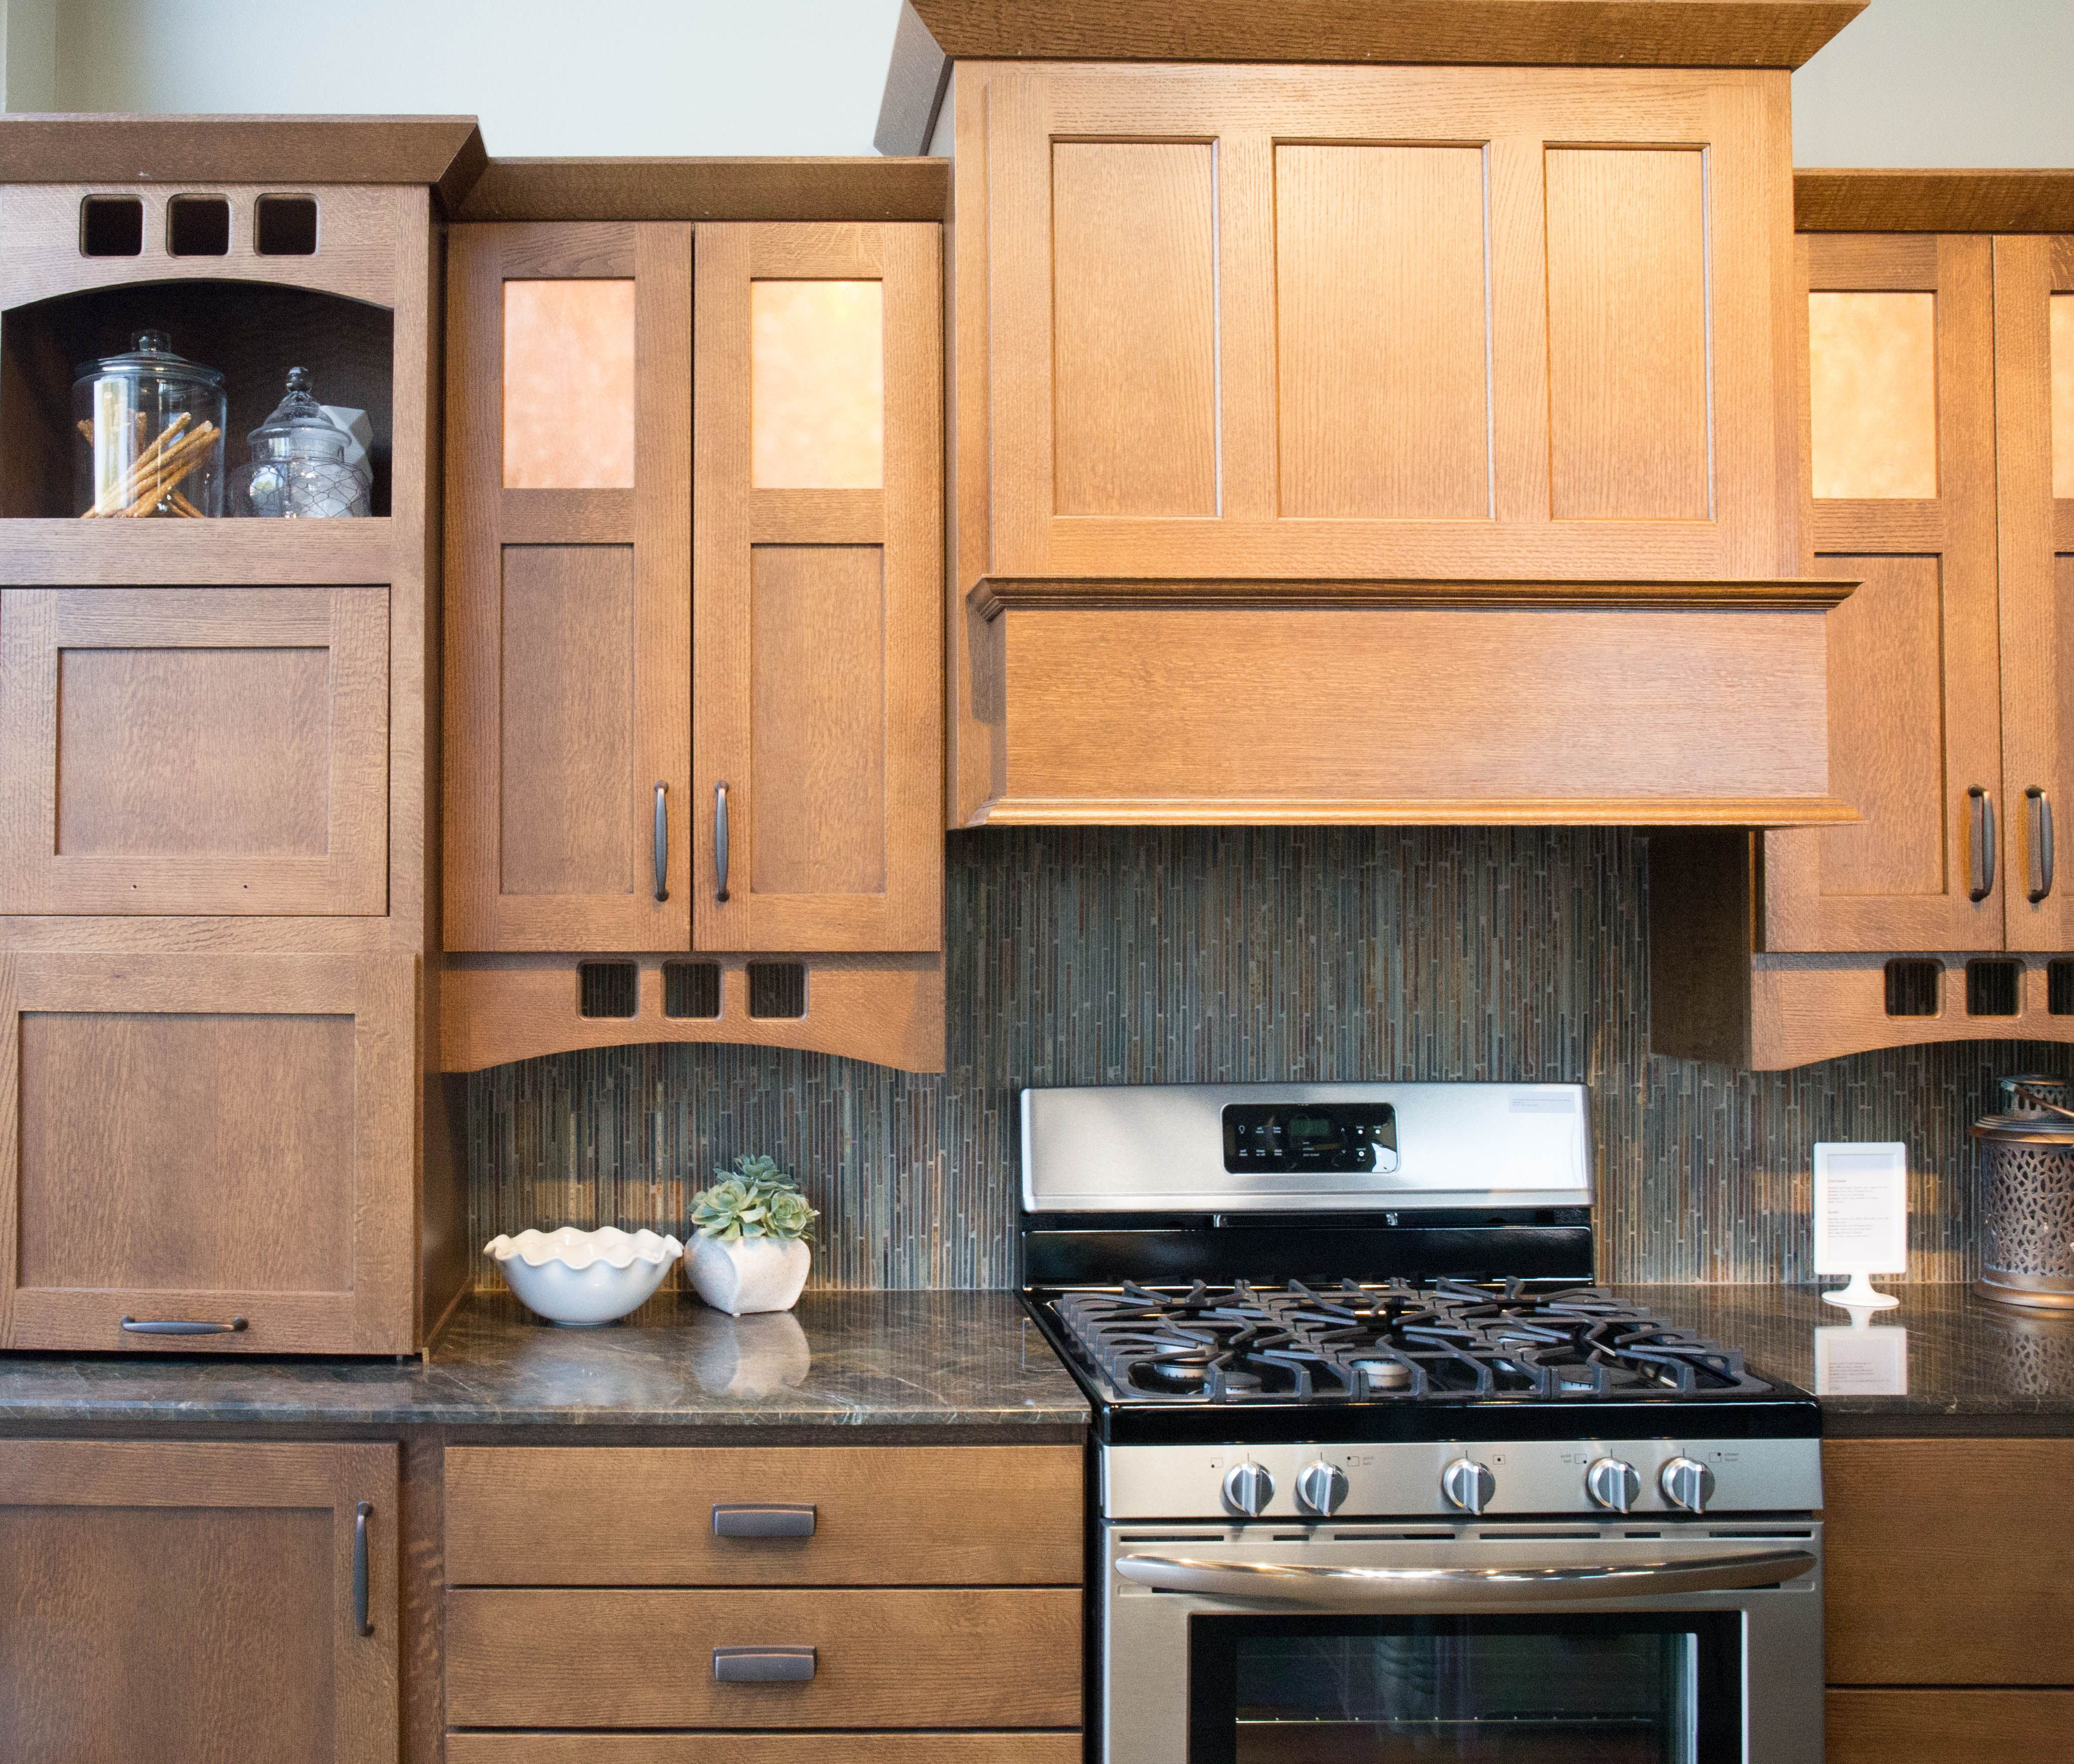 Copper Cabinet Accents Stainless Steel Appliances And Oil Rubbed